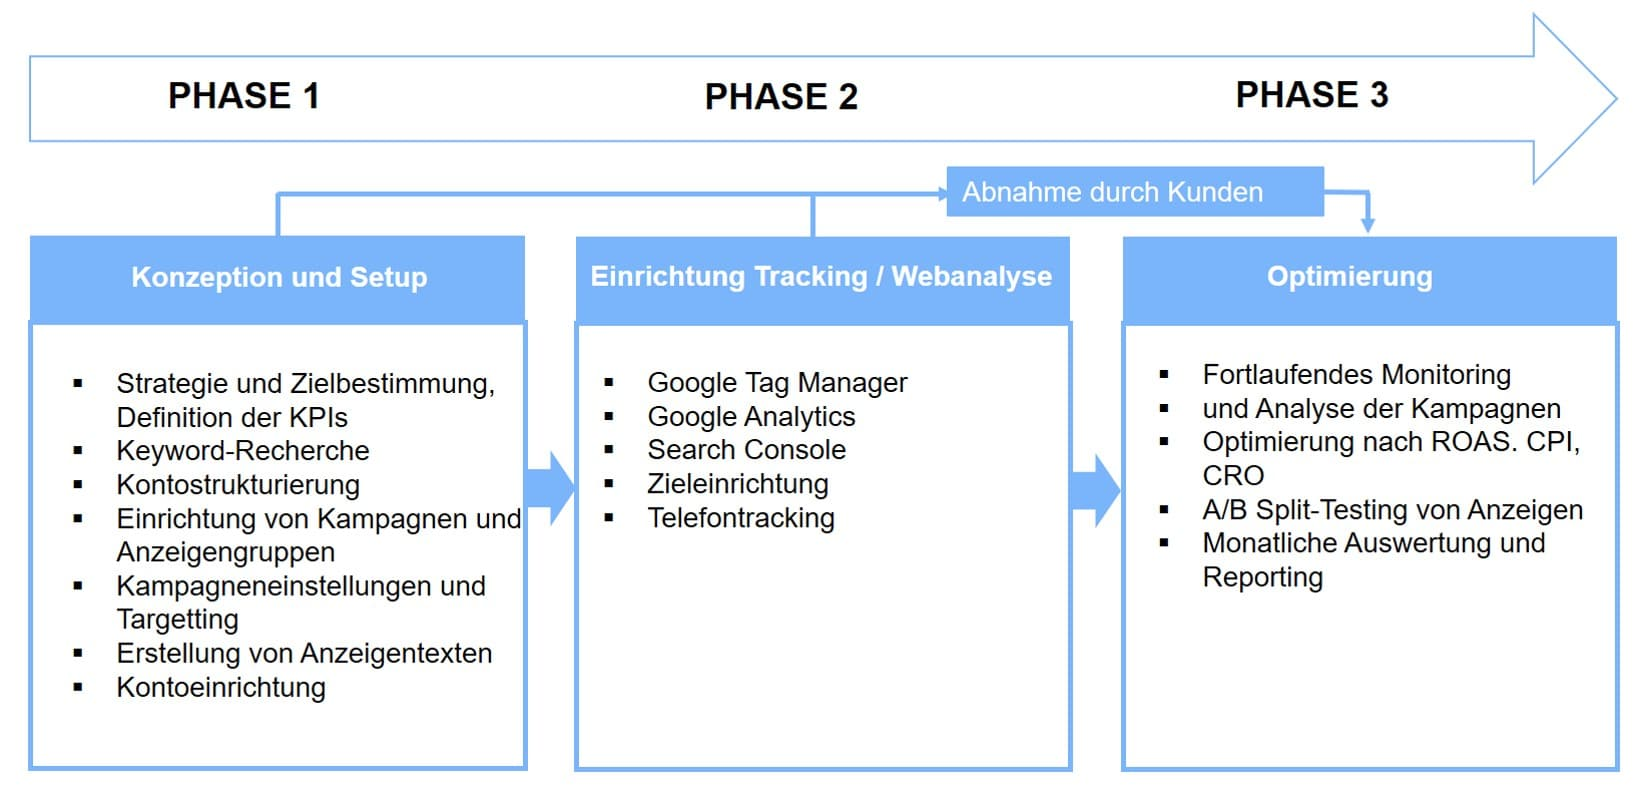 Ablauf adwords 3 - Google Adwords